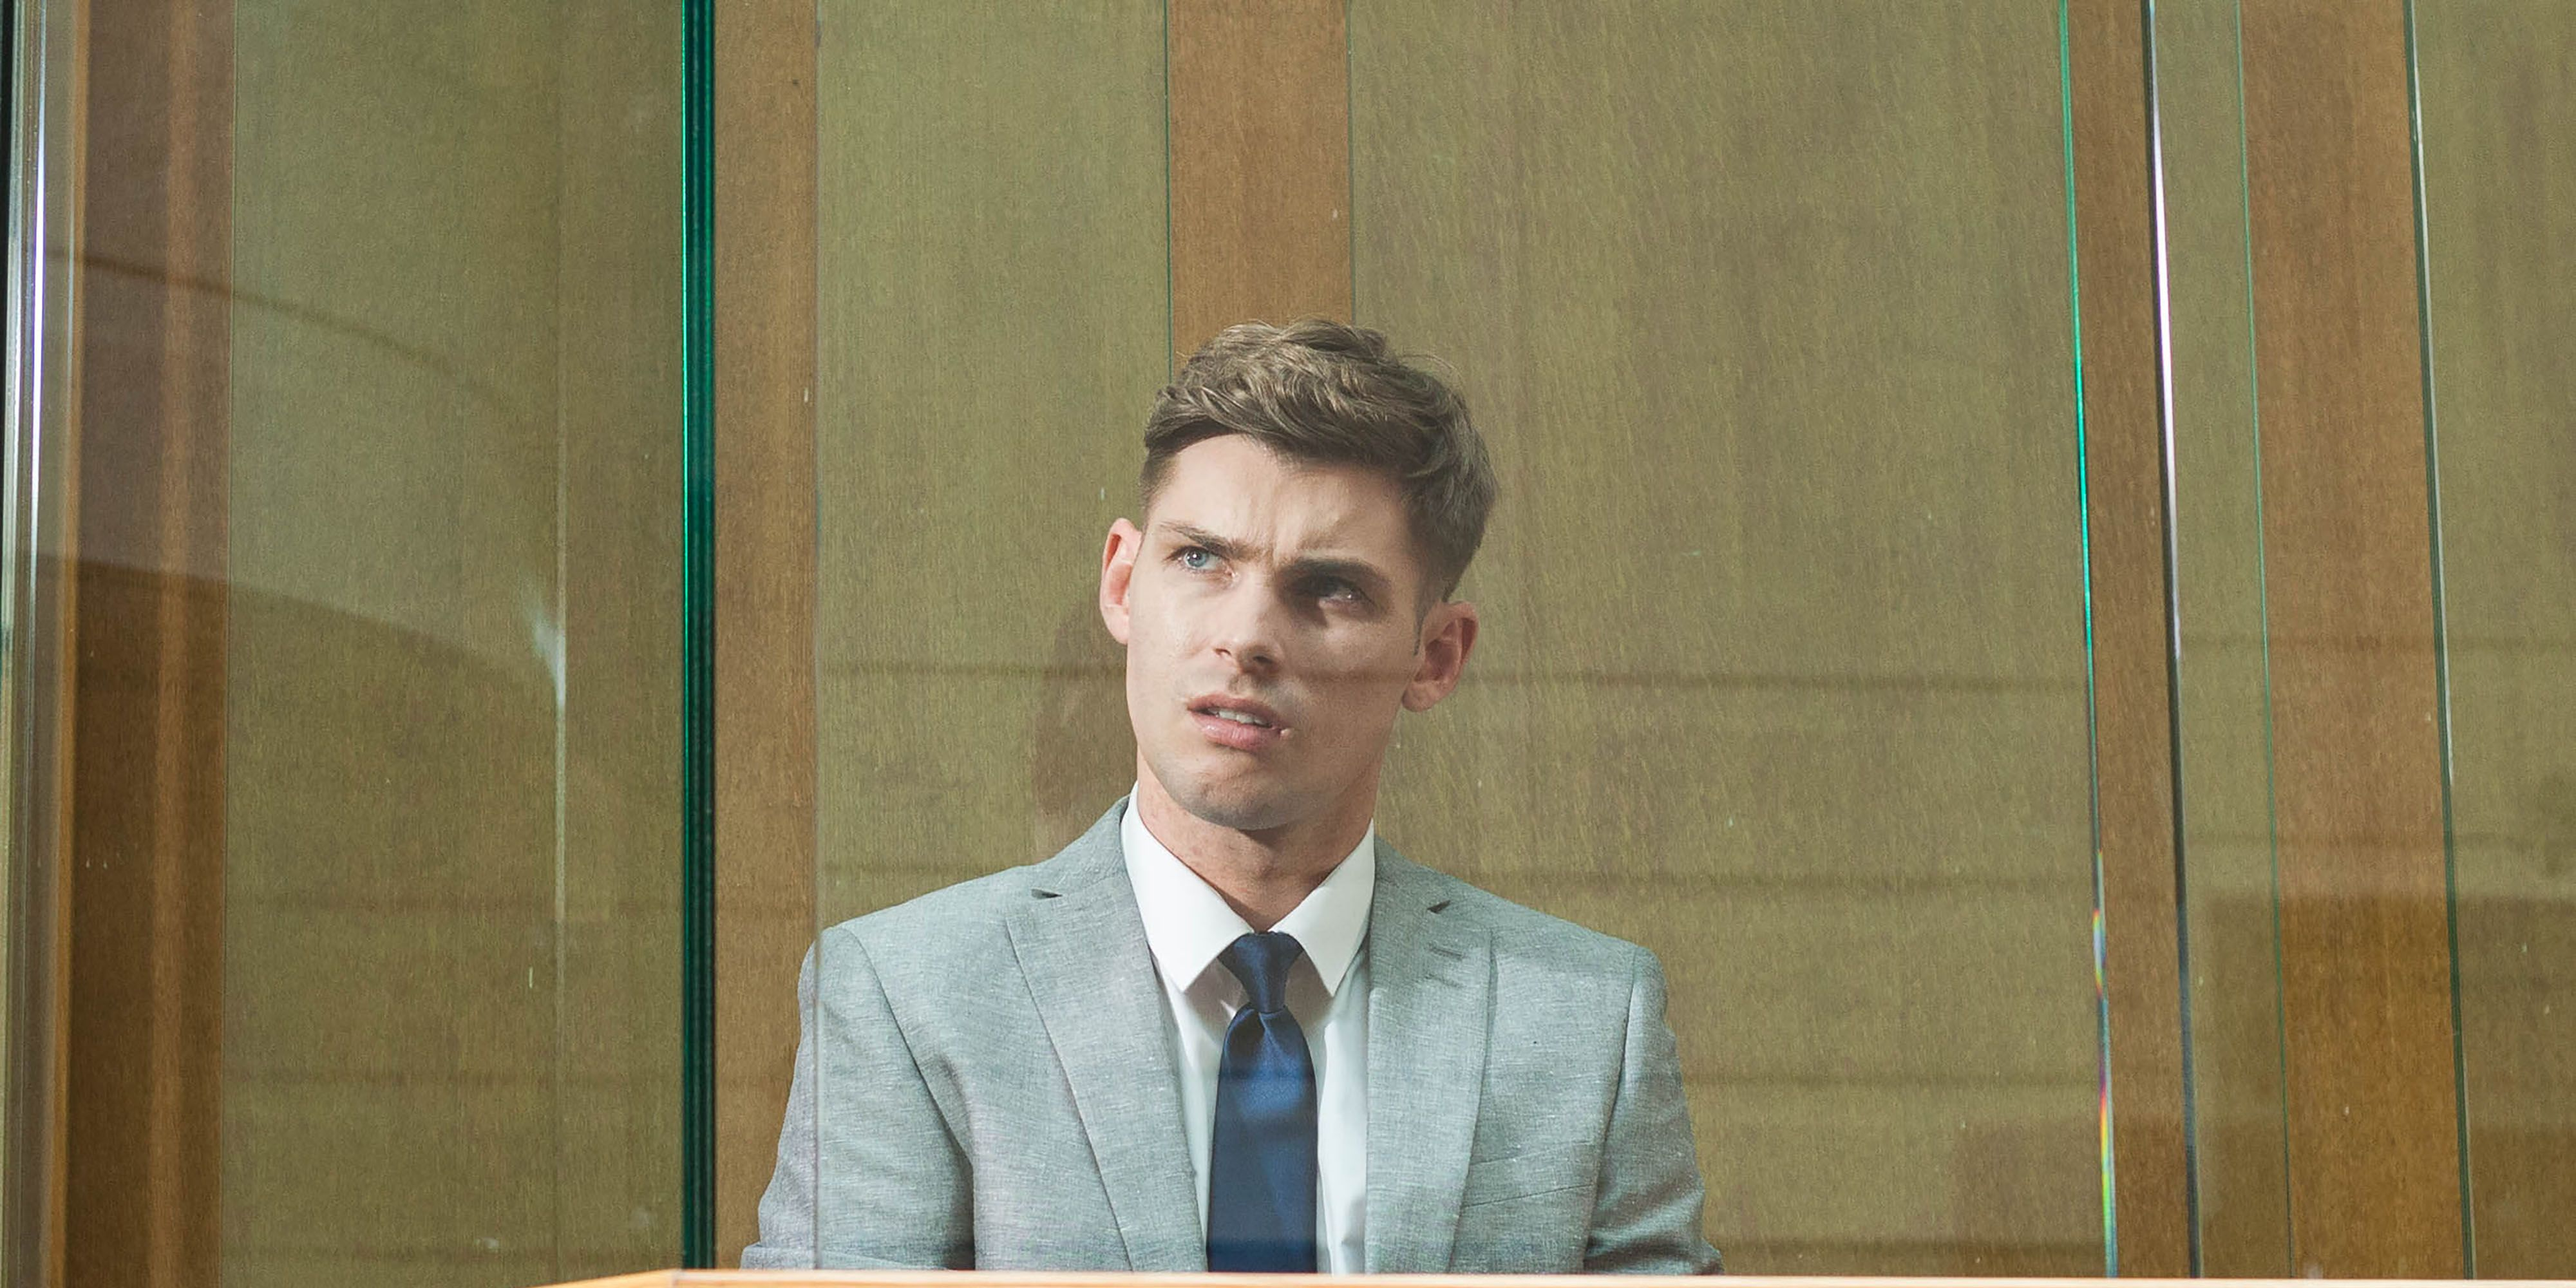 Ste Hay is baffled by James Nightingale's behaviour at his trial in Hollyoaks